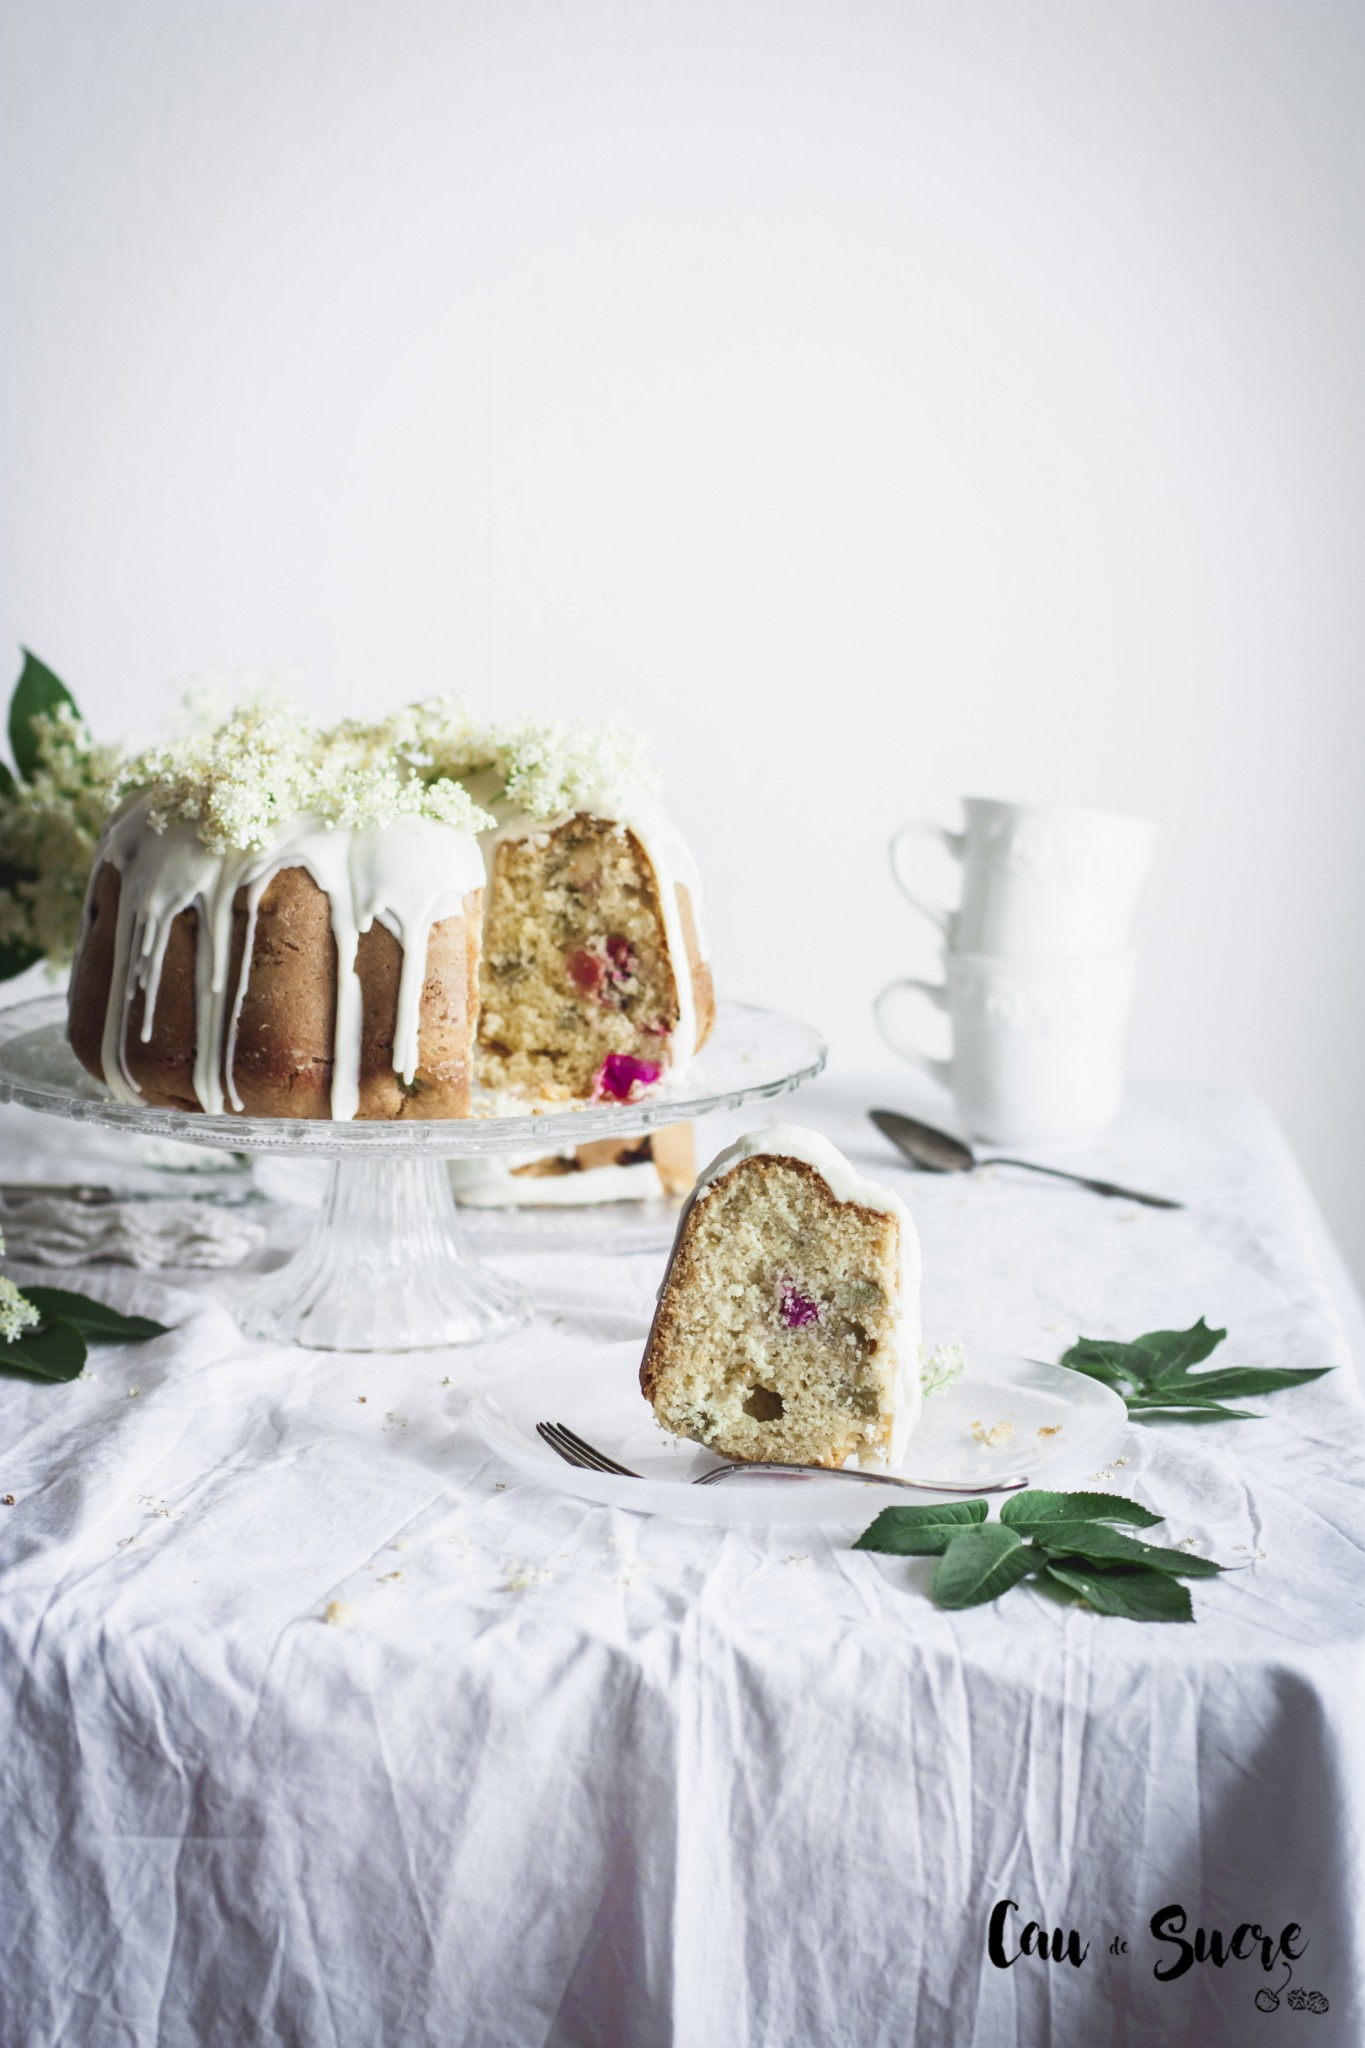 rhubarb_eldelflower_bundtcake-47